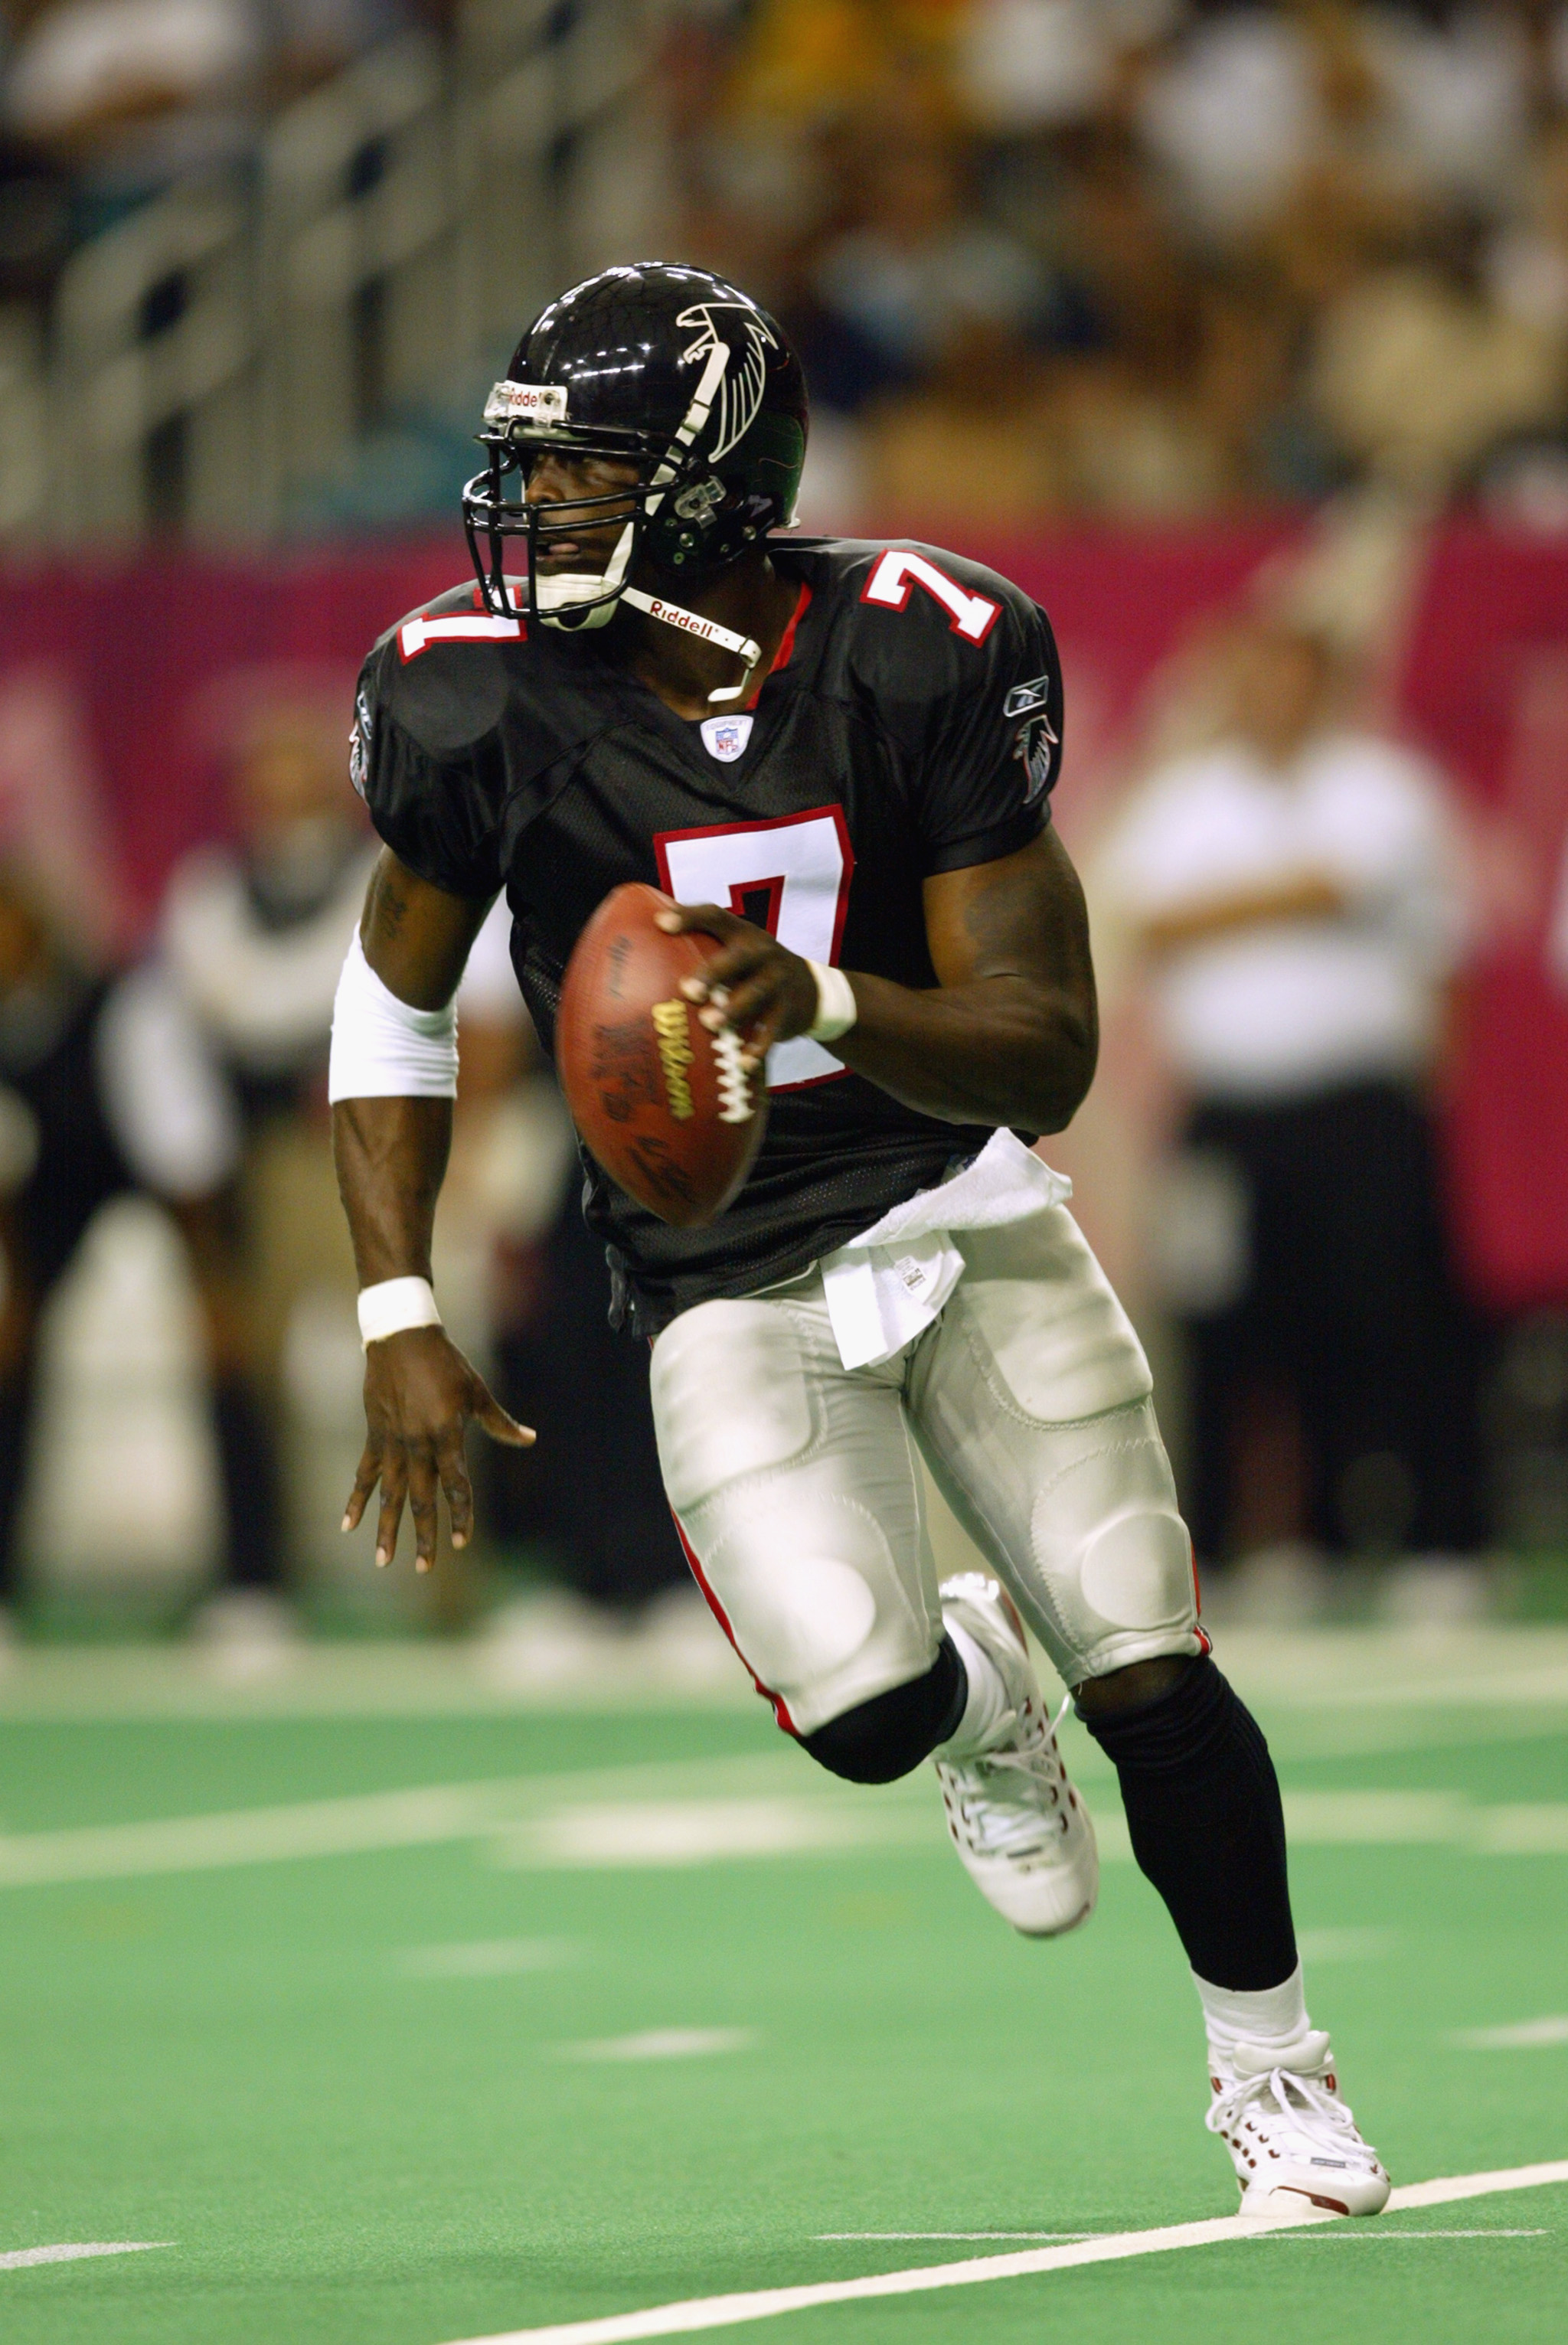 Michael Vick's departure may not have been such a bad thing.